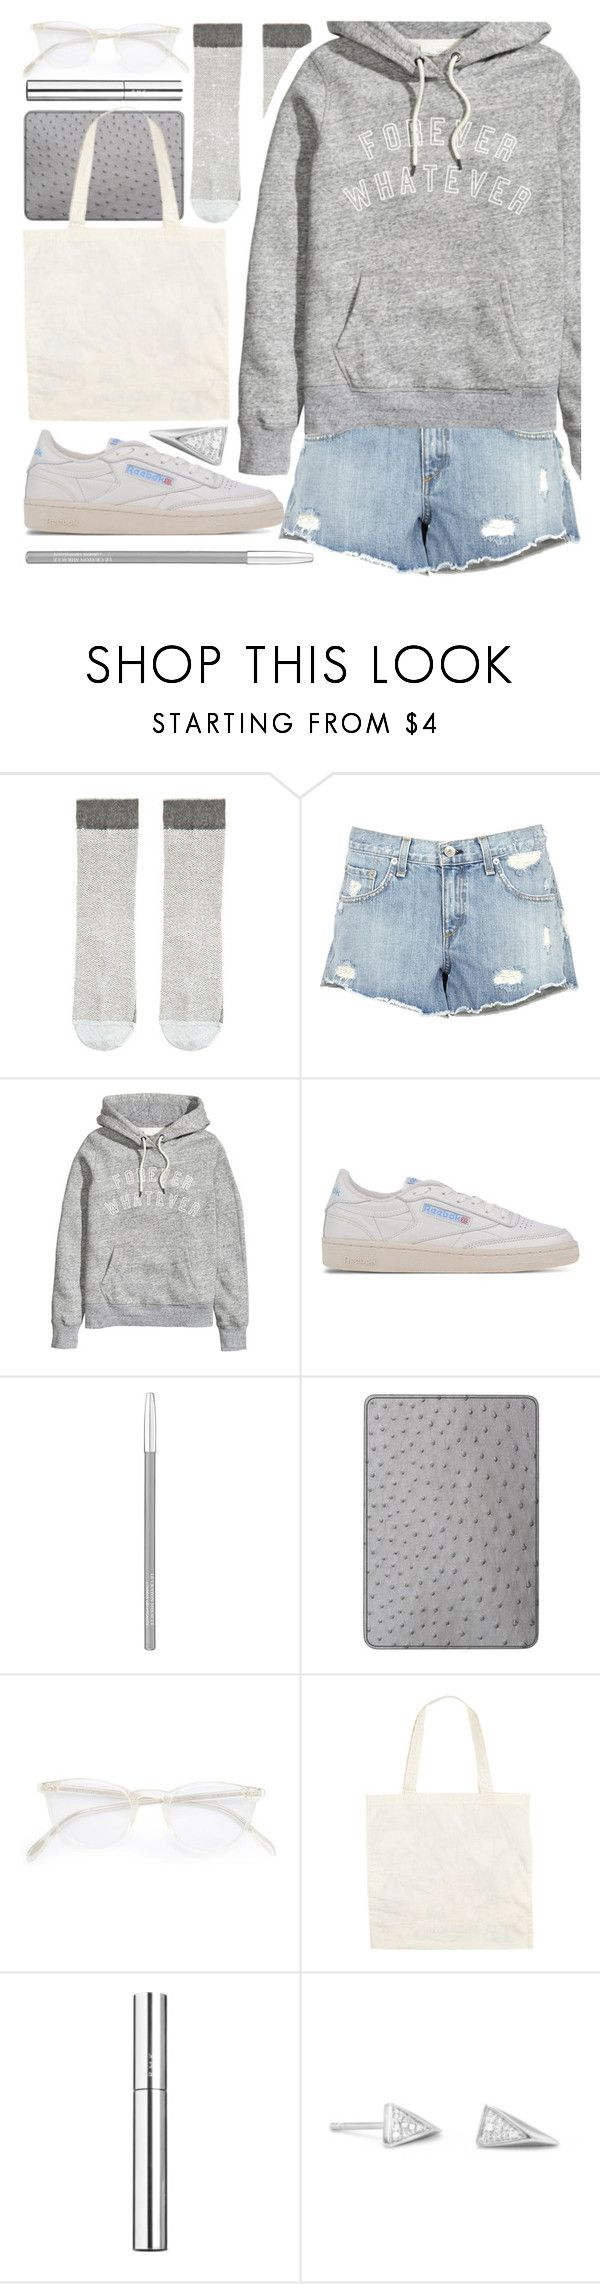 """forever whatever"" by foundlostme ❤ liked on Polyvore featuring rag & bone, Reebok, Lancôme, Maison Takuya, Oliver Peoples, RMK, BillyTheTree, denimshorts and distresseddenim"